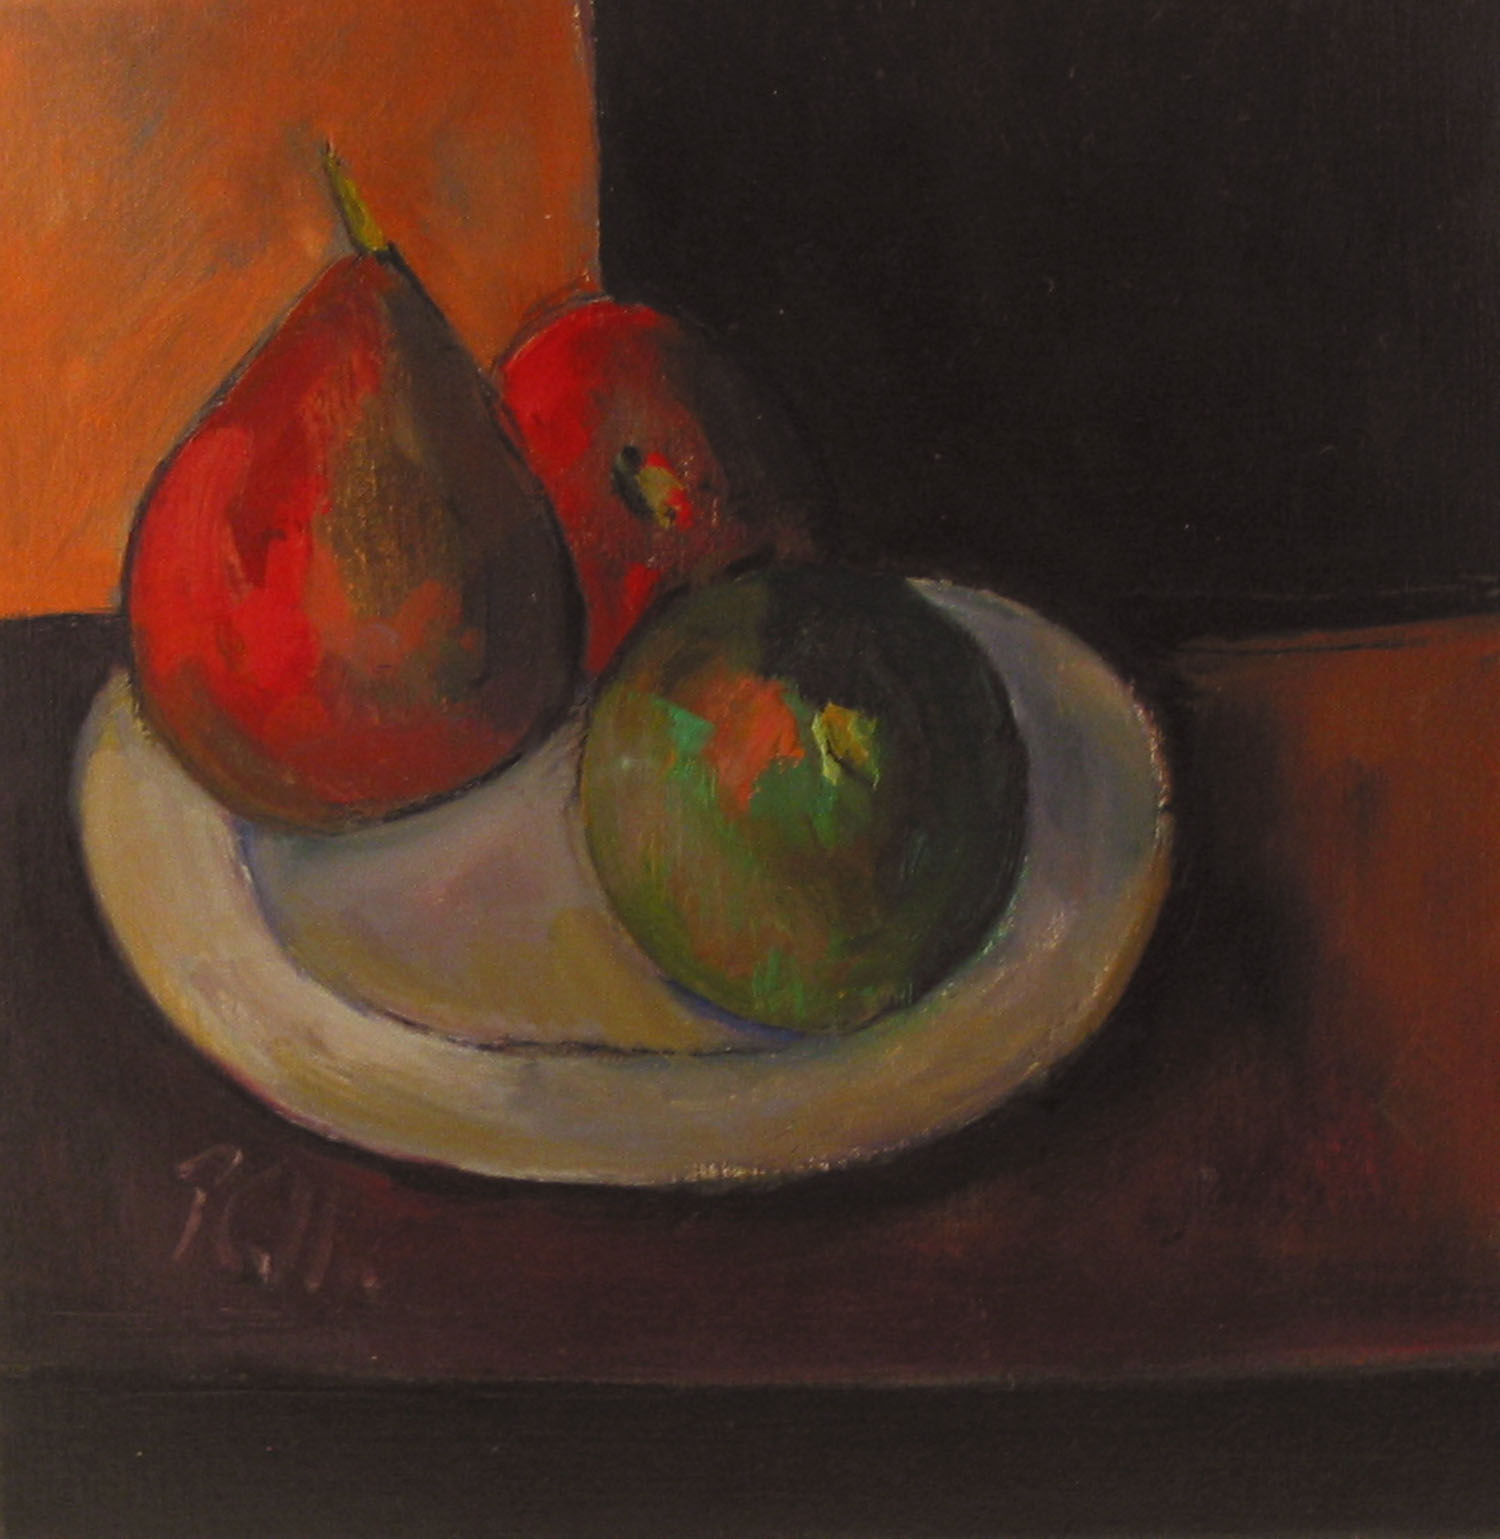 Peter Collis_-_Fruit and Plate on Table_oil on canvas_25.5 x 25.5cm.jpg